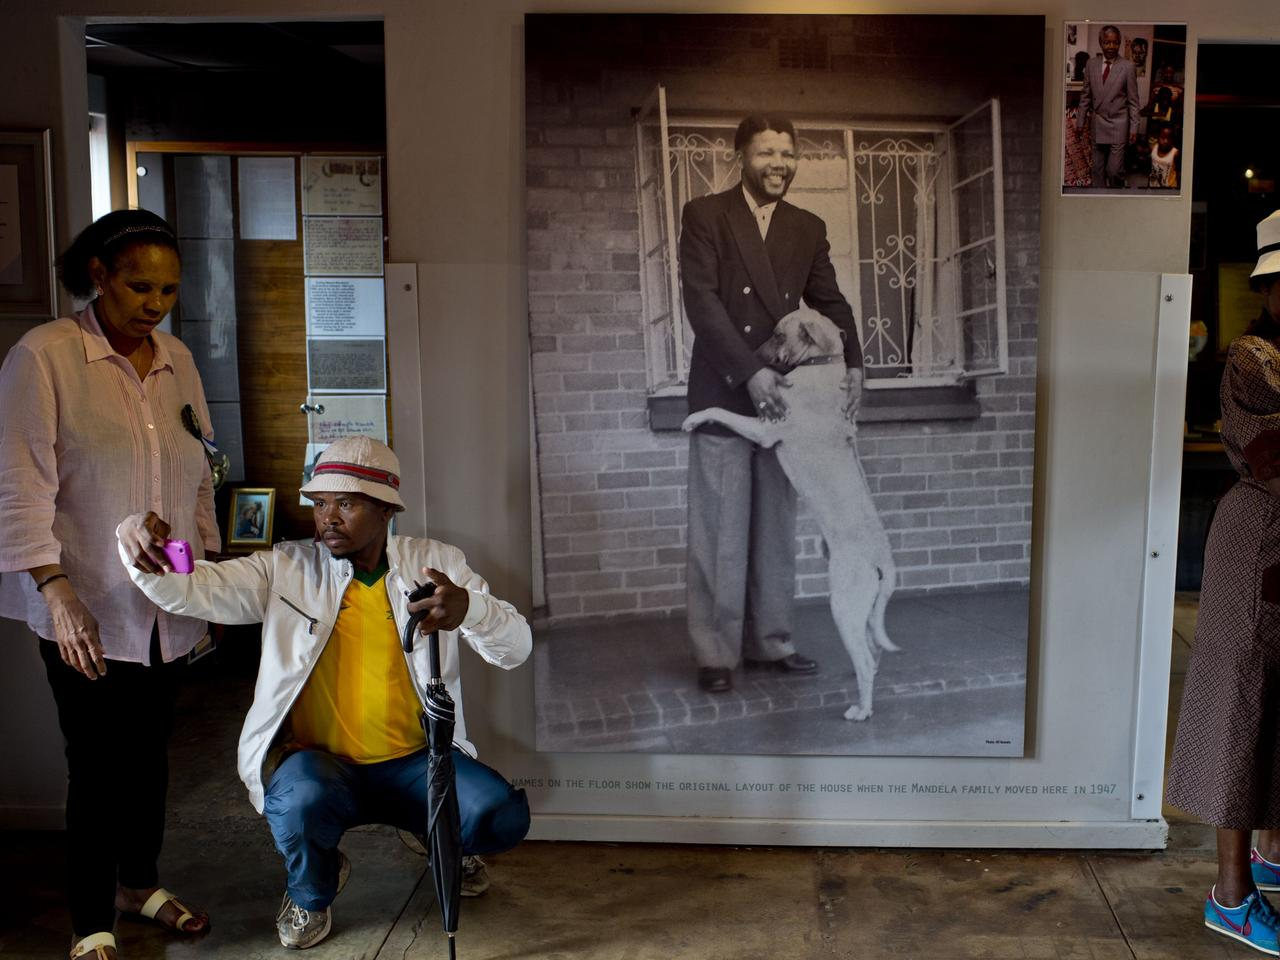 People visit the 'Mandela House' museum in Soweto township in Johannesburg on December 9, 2013. Mandela, the revered icon of the anti-apartheid struggle in South Africa and one of the towering political figures of the 20th century, died in Johannesburg on December 5 at age 95. Mandela, who was elected South Africa's first black president after spending nearly three decades in prison, had been receiving treatment for a lung infection at his Johannesburg home since September, after three months in hospital in a critical state.  AFP PHOTO / PEDRO UGARTE  Picture: Afp